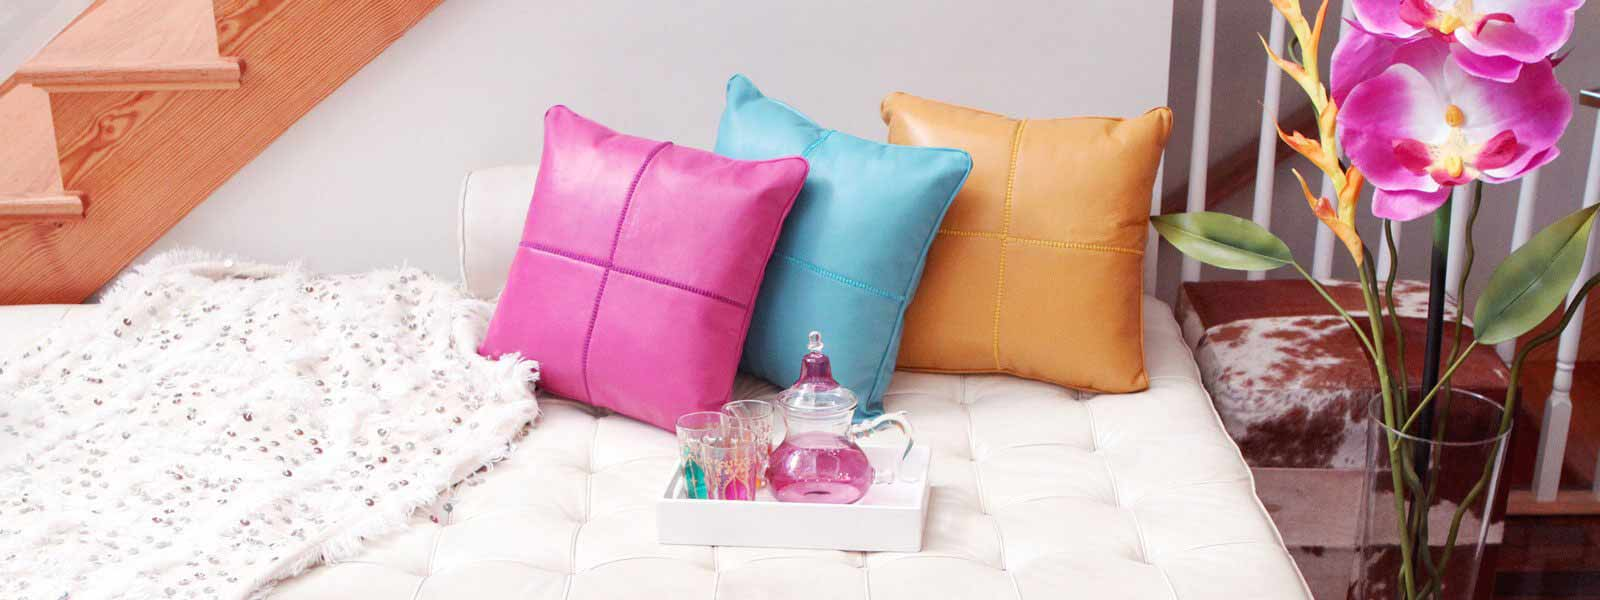 Moroccan Prestige - Pillows & throws